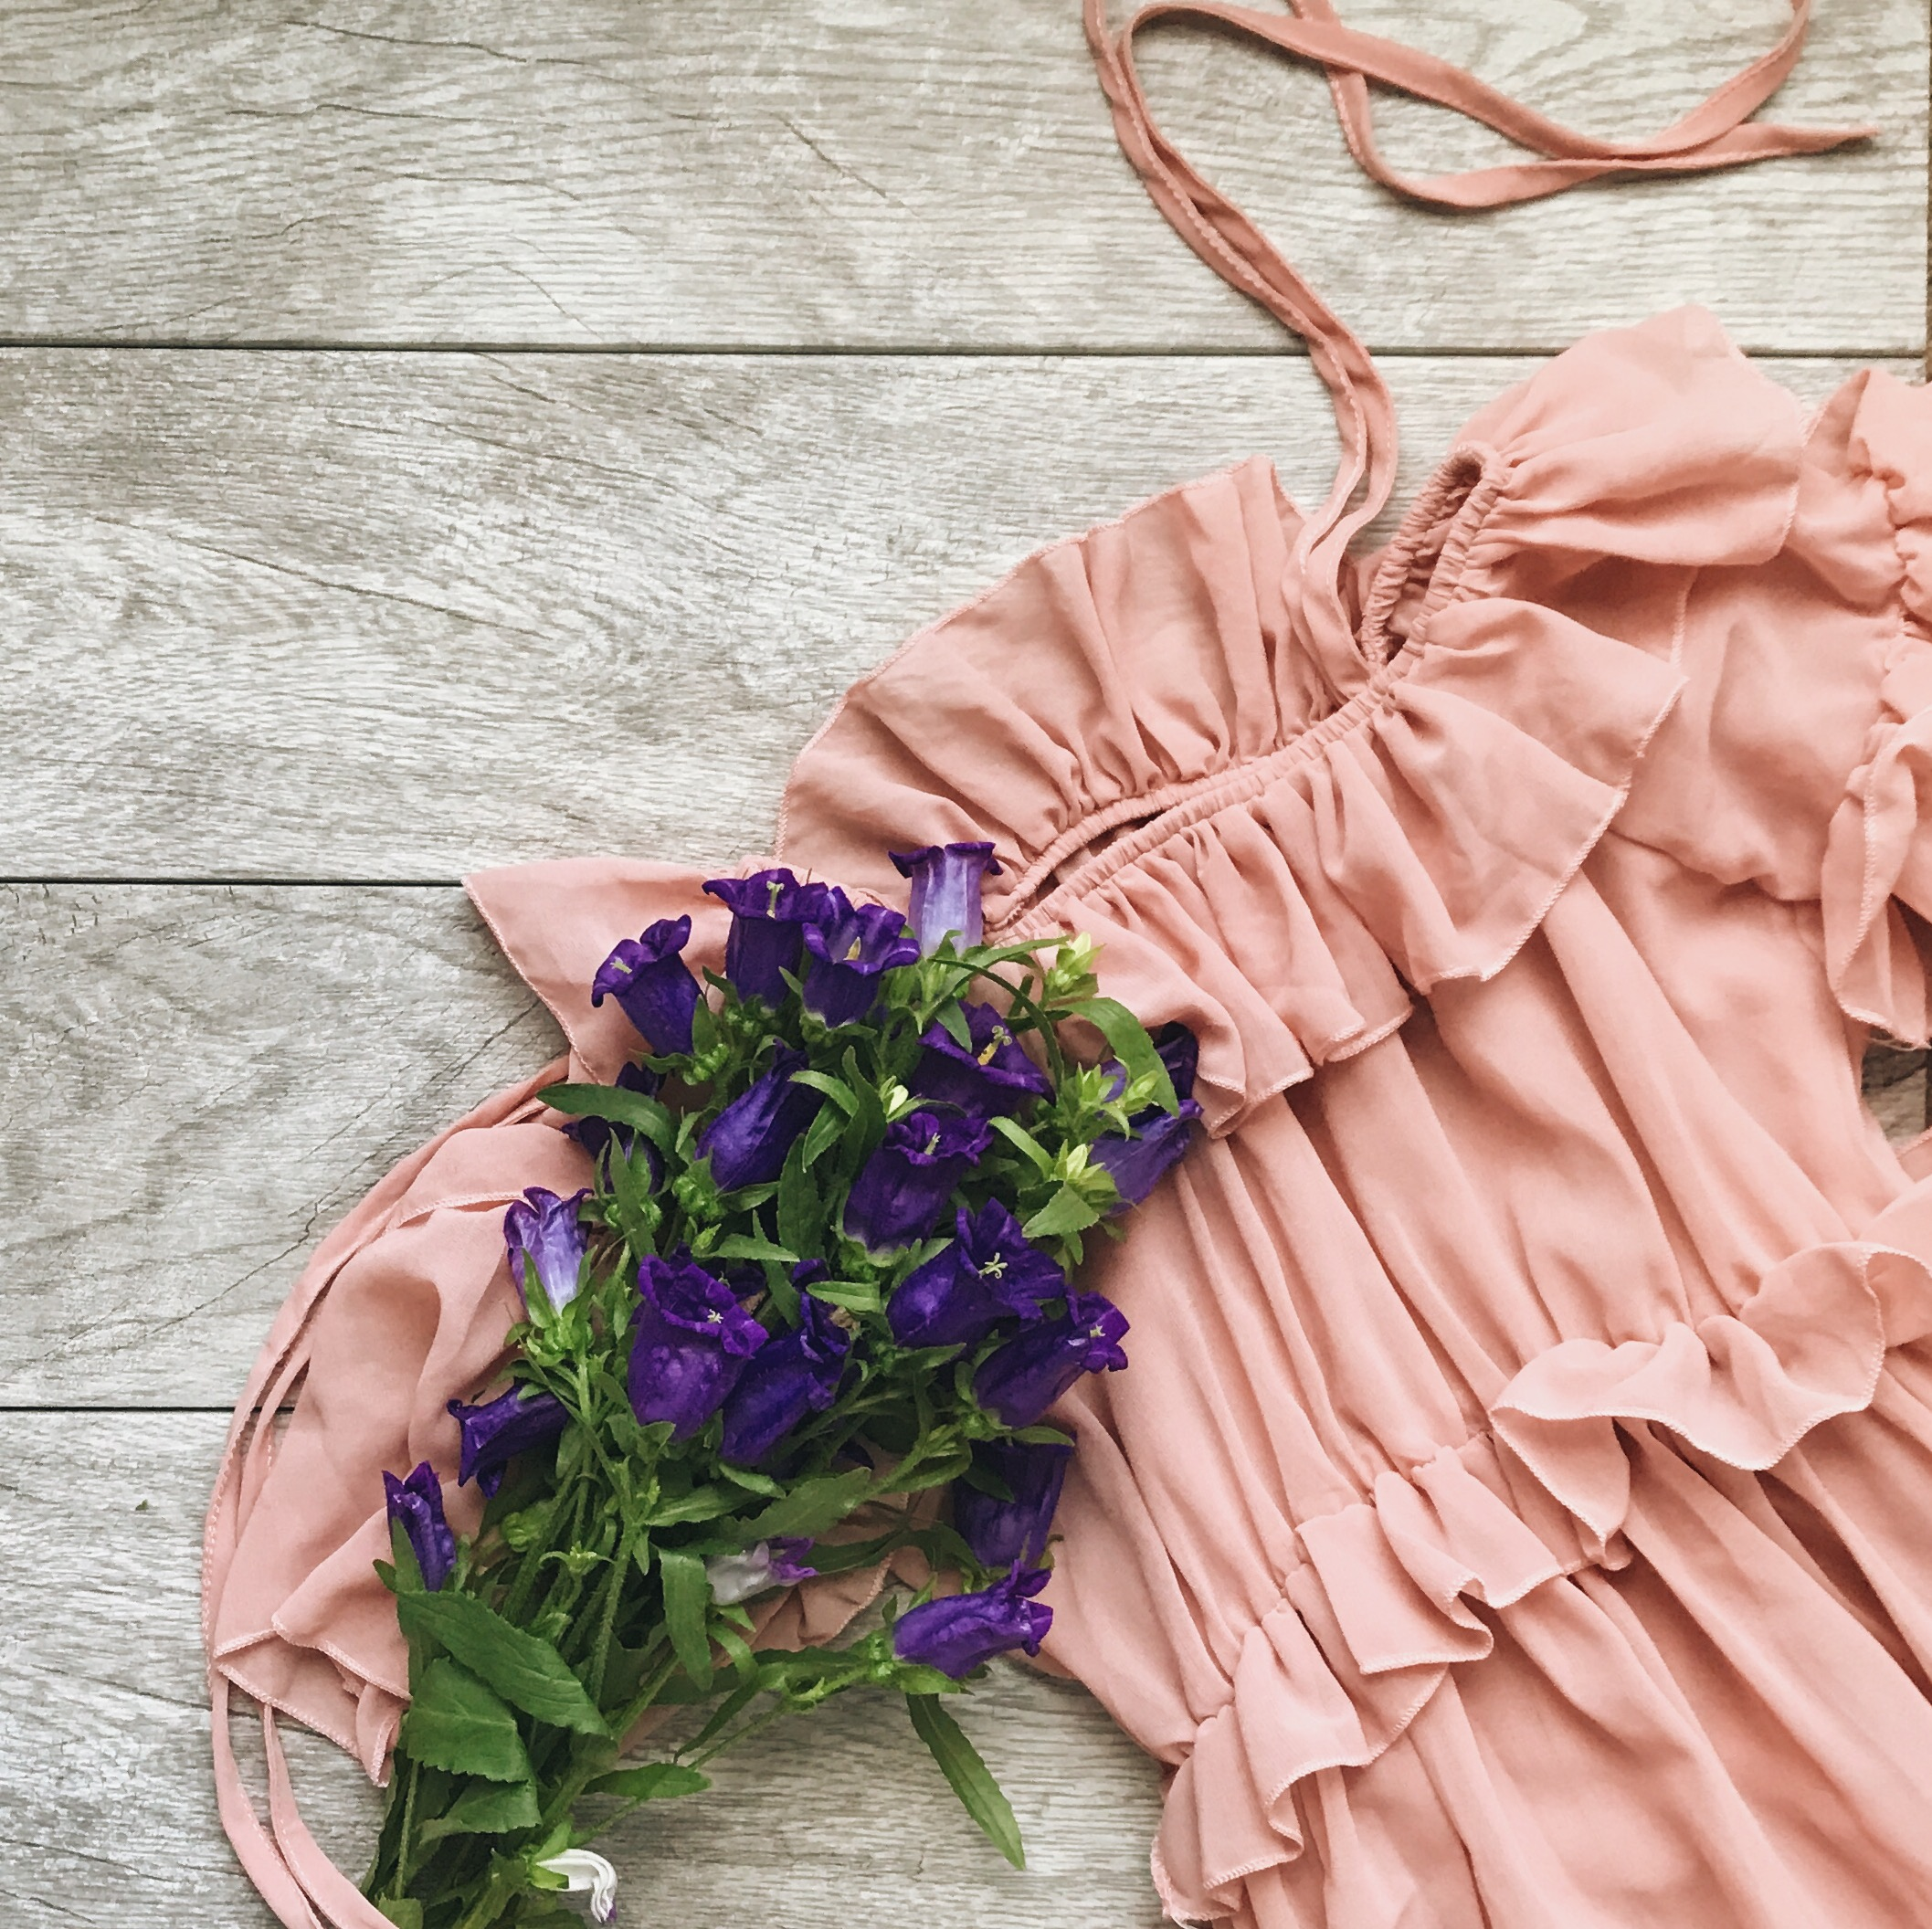 Flatlay-pink-ruffled-dress-with-purple-flowers-by-Atlanta-photographer-Chanel-French